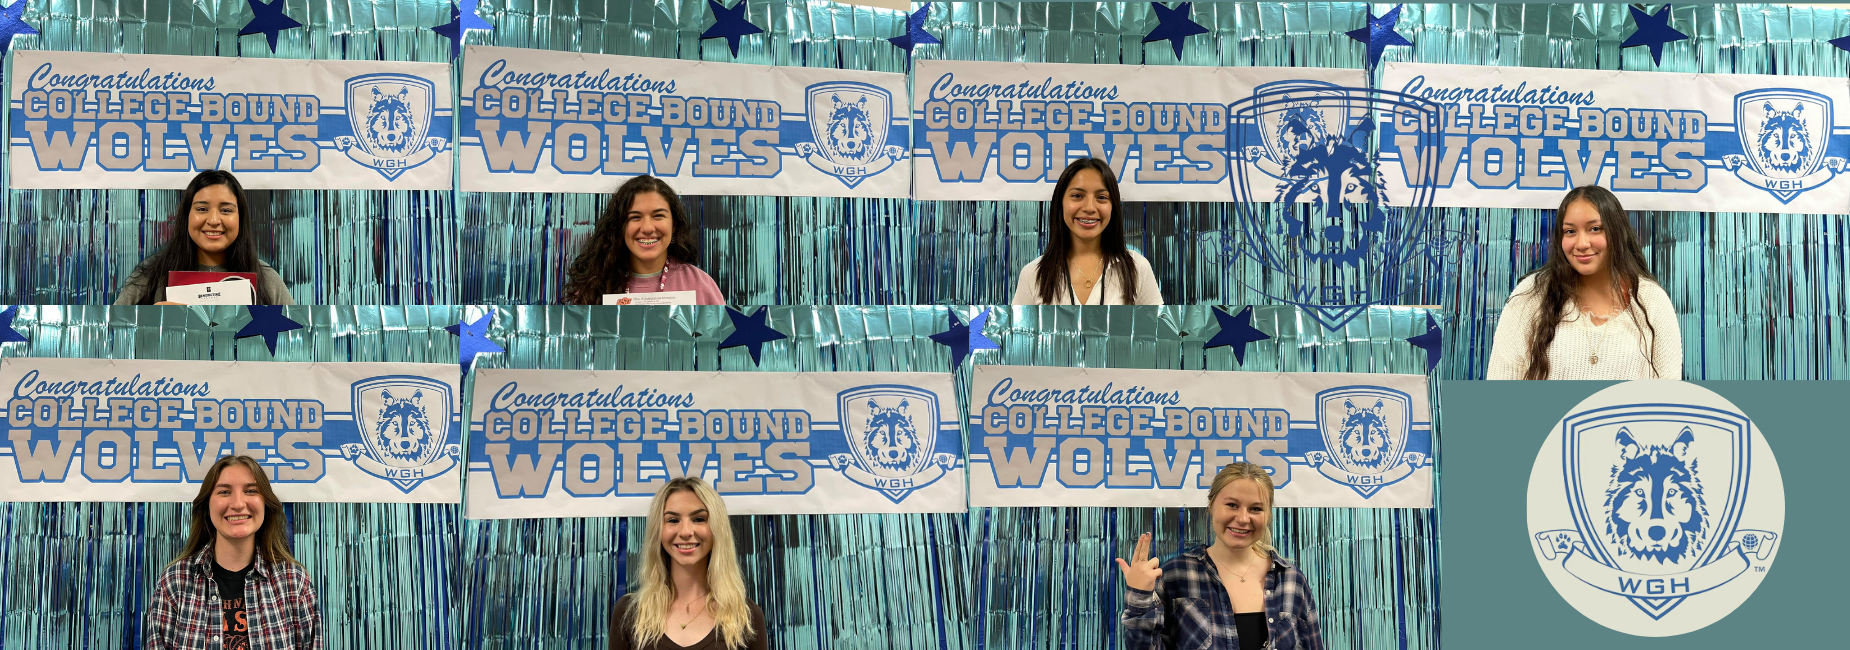 collage of teen girls standing before a banner that reads congrats college bound wolves